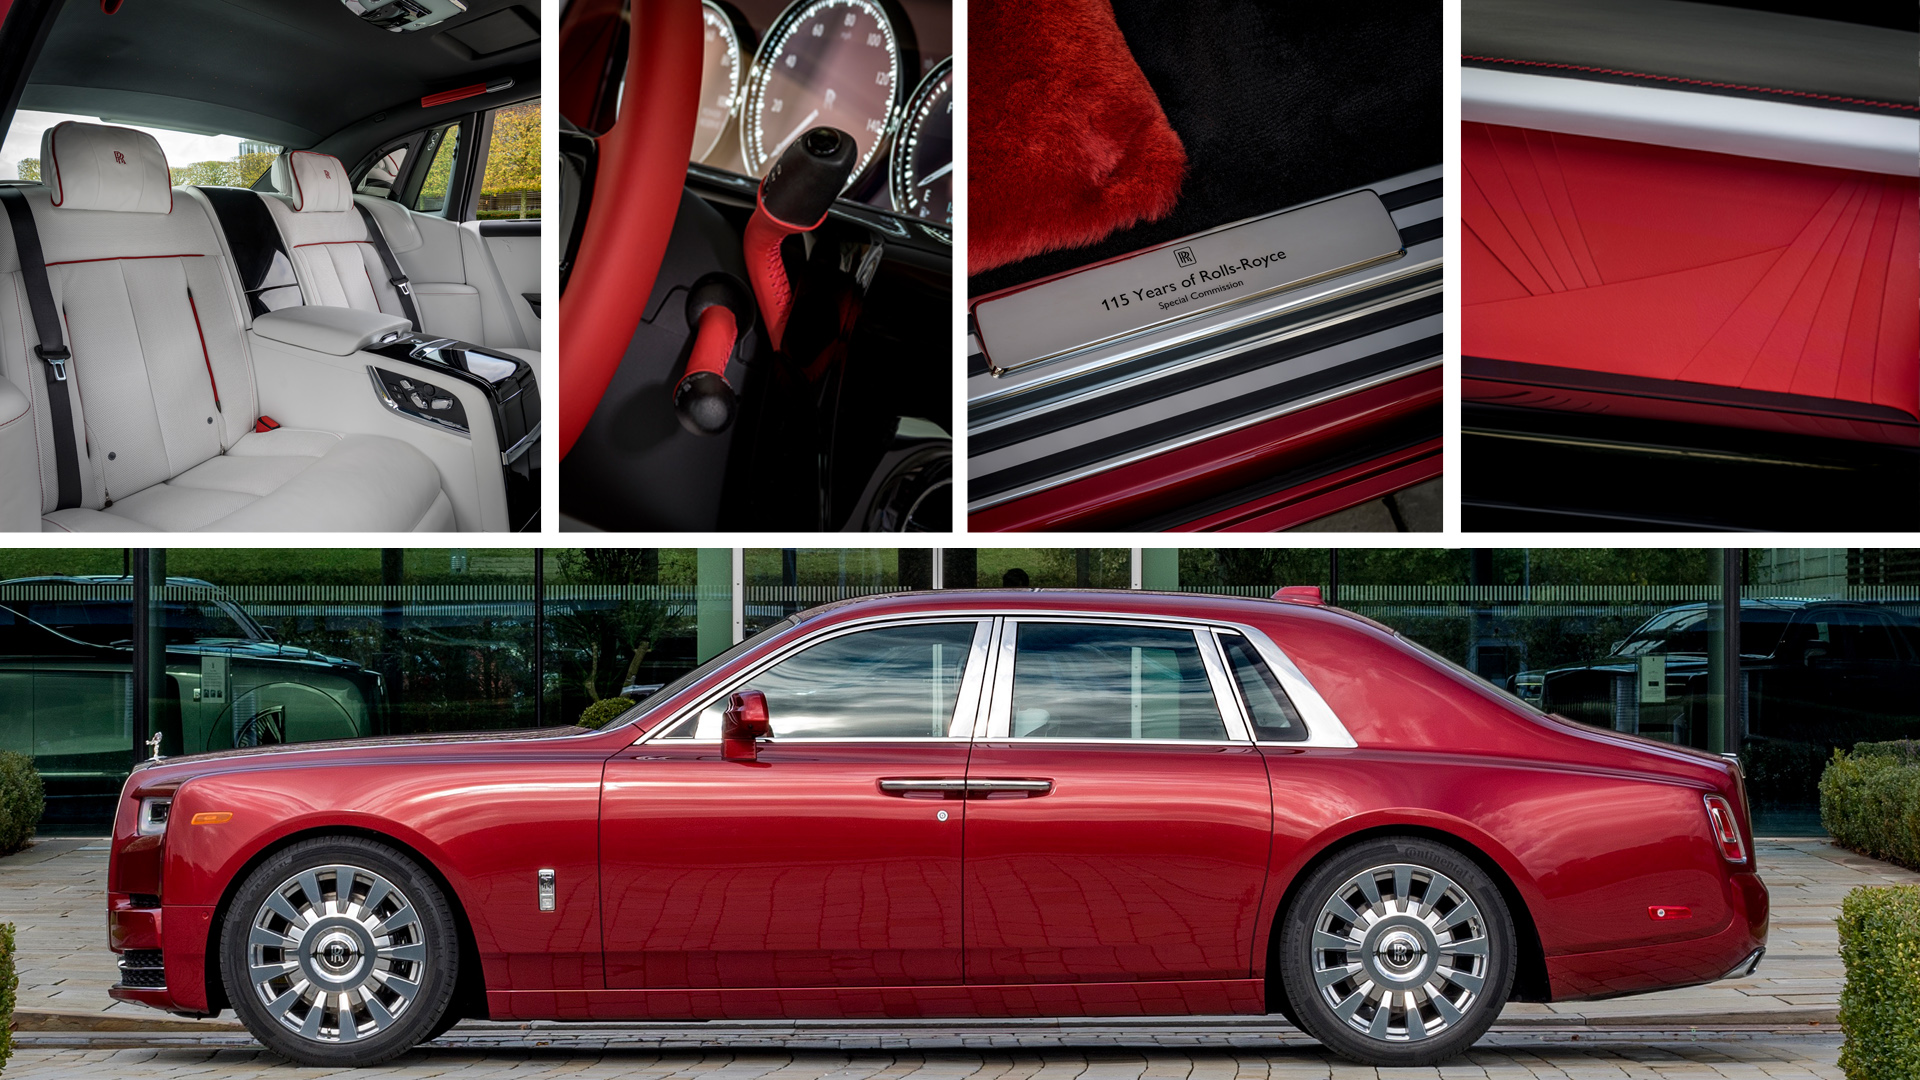 rolls-royce magma red